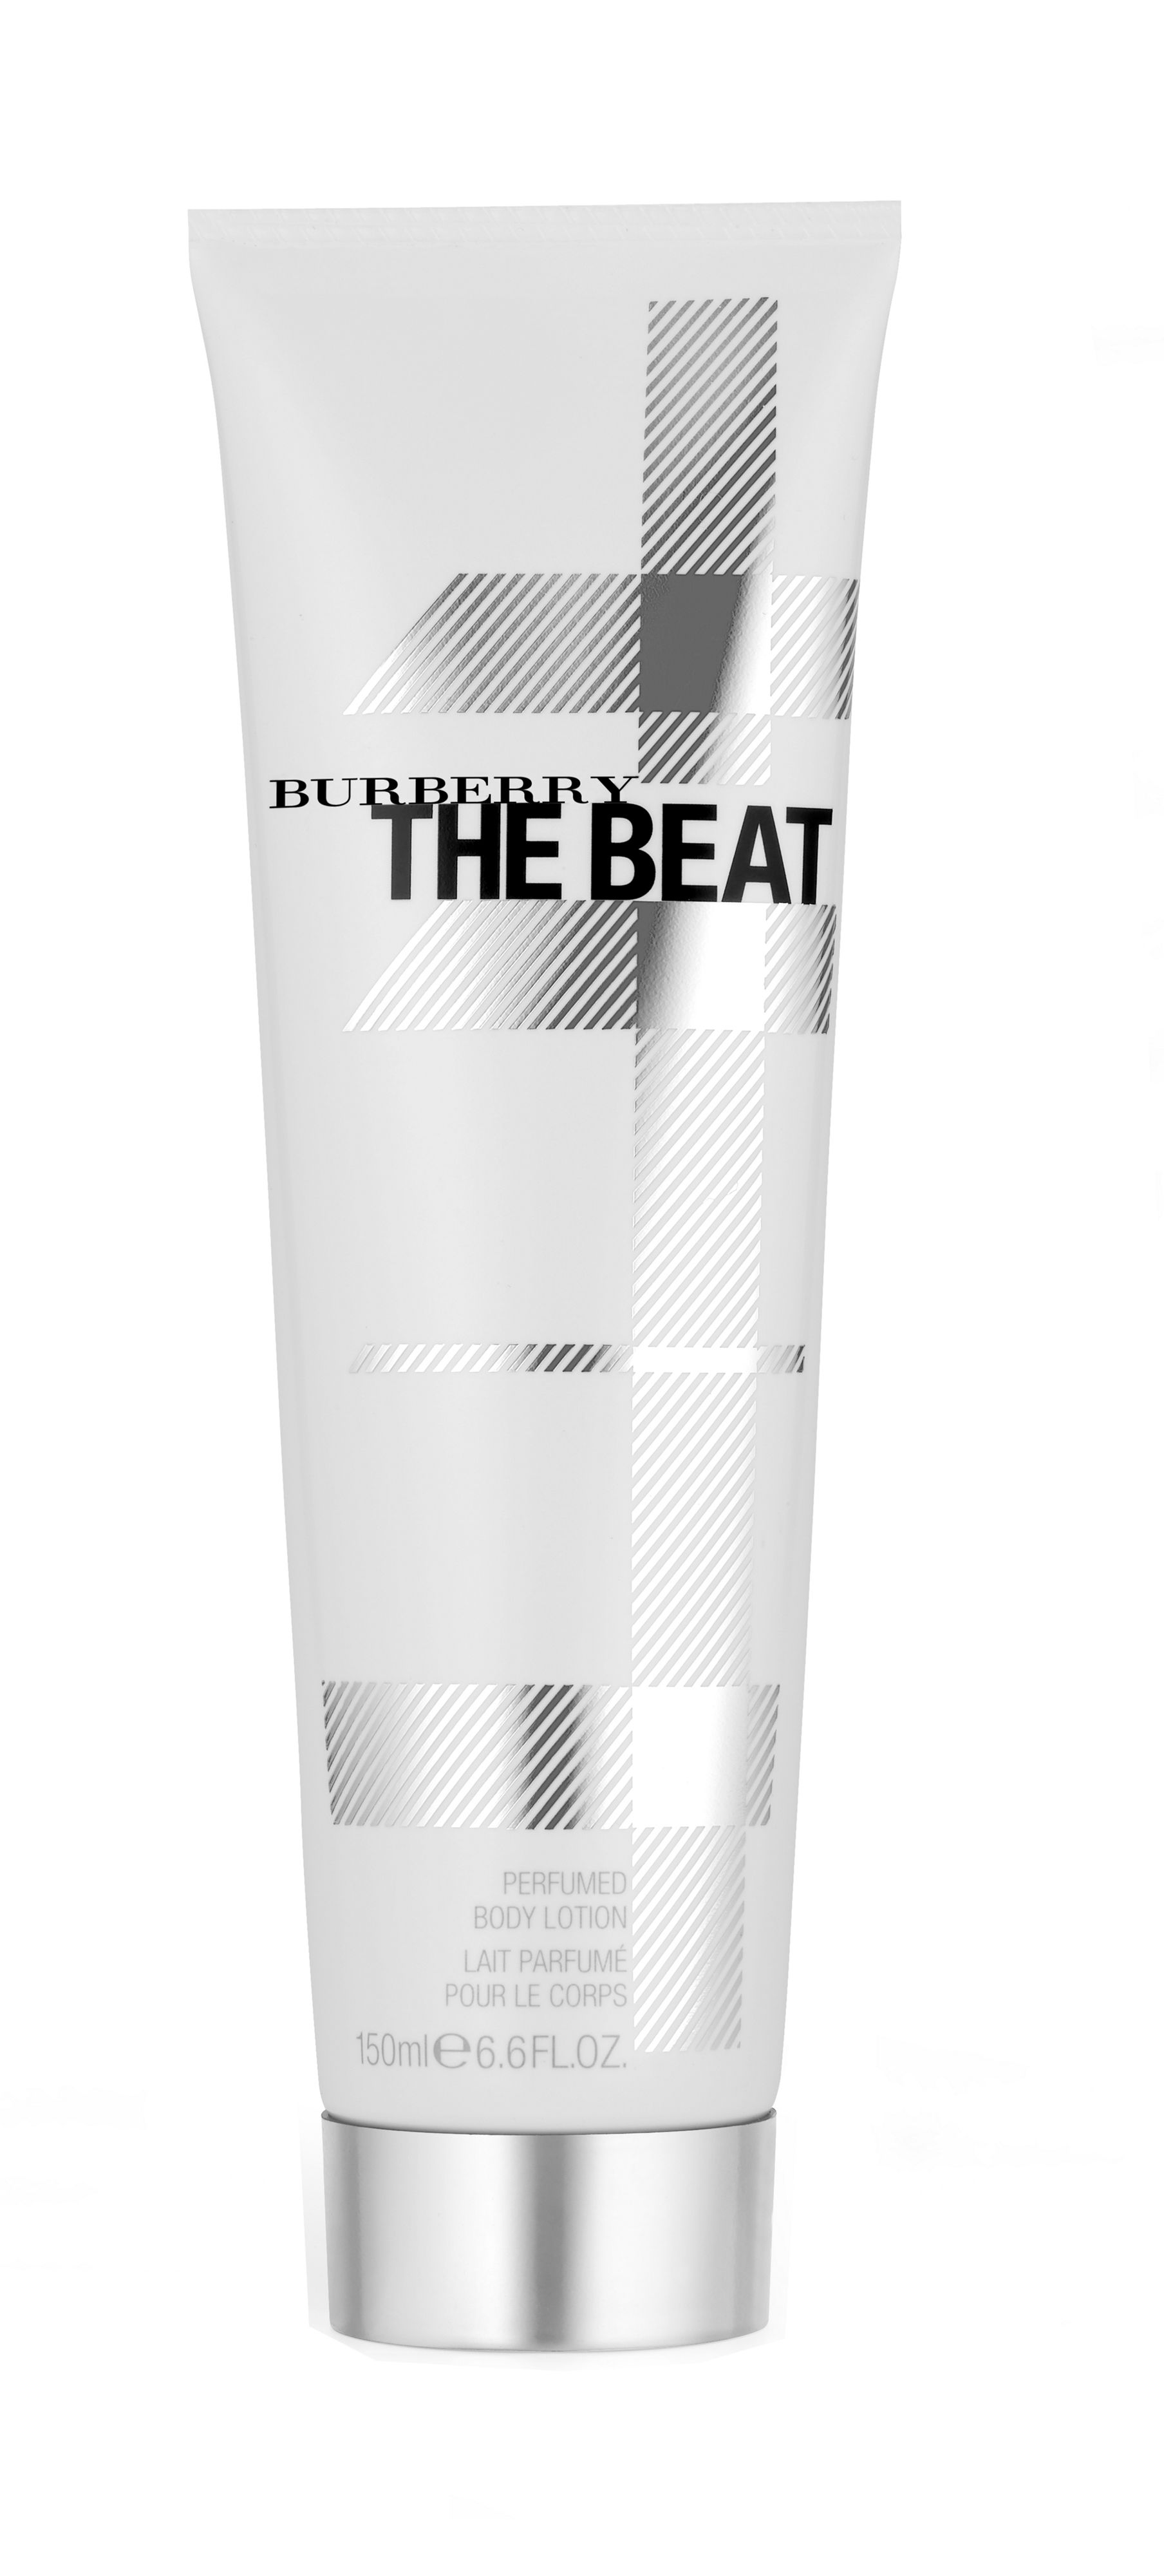 150ml The Beat body lotion